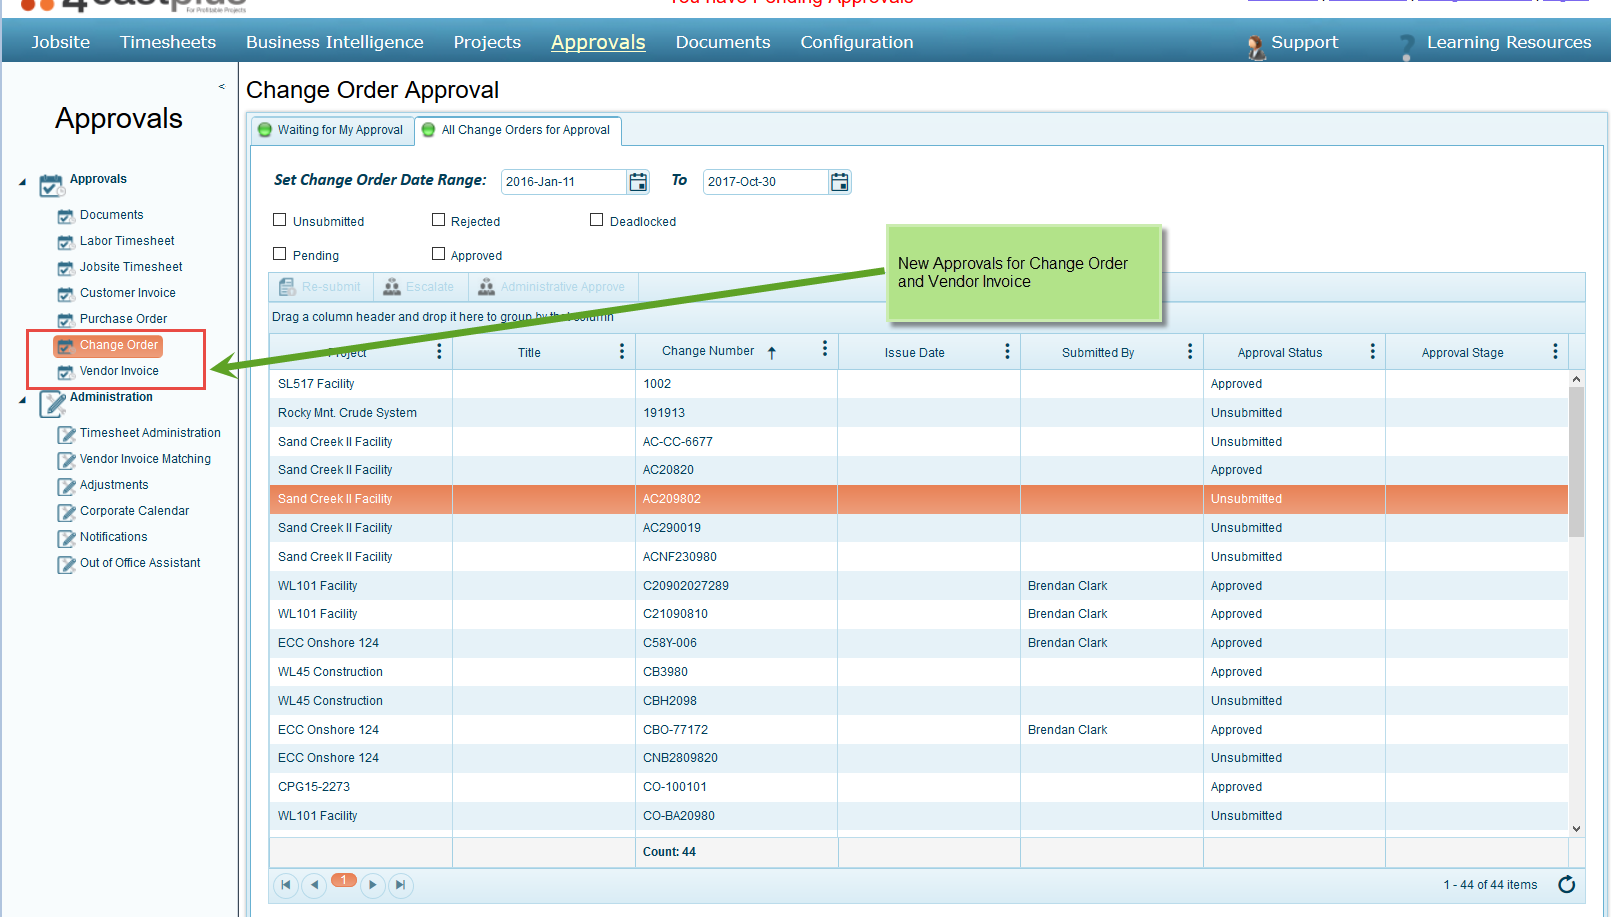 Change Order and Vendor Invoice Approvals Workflows